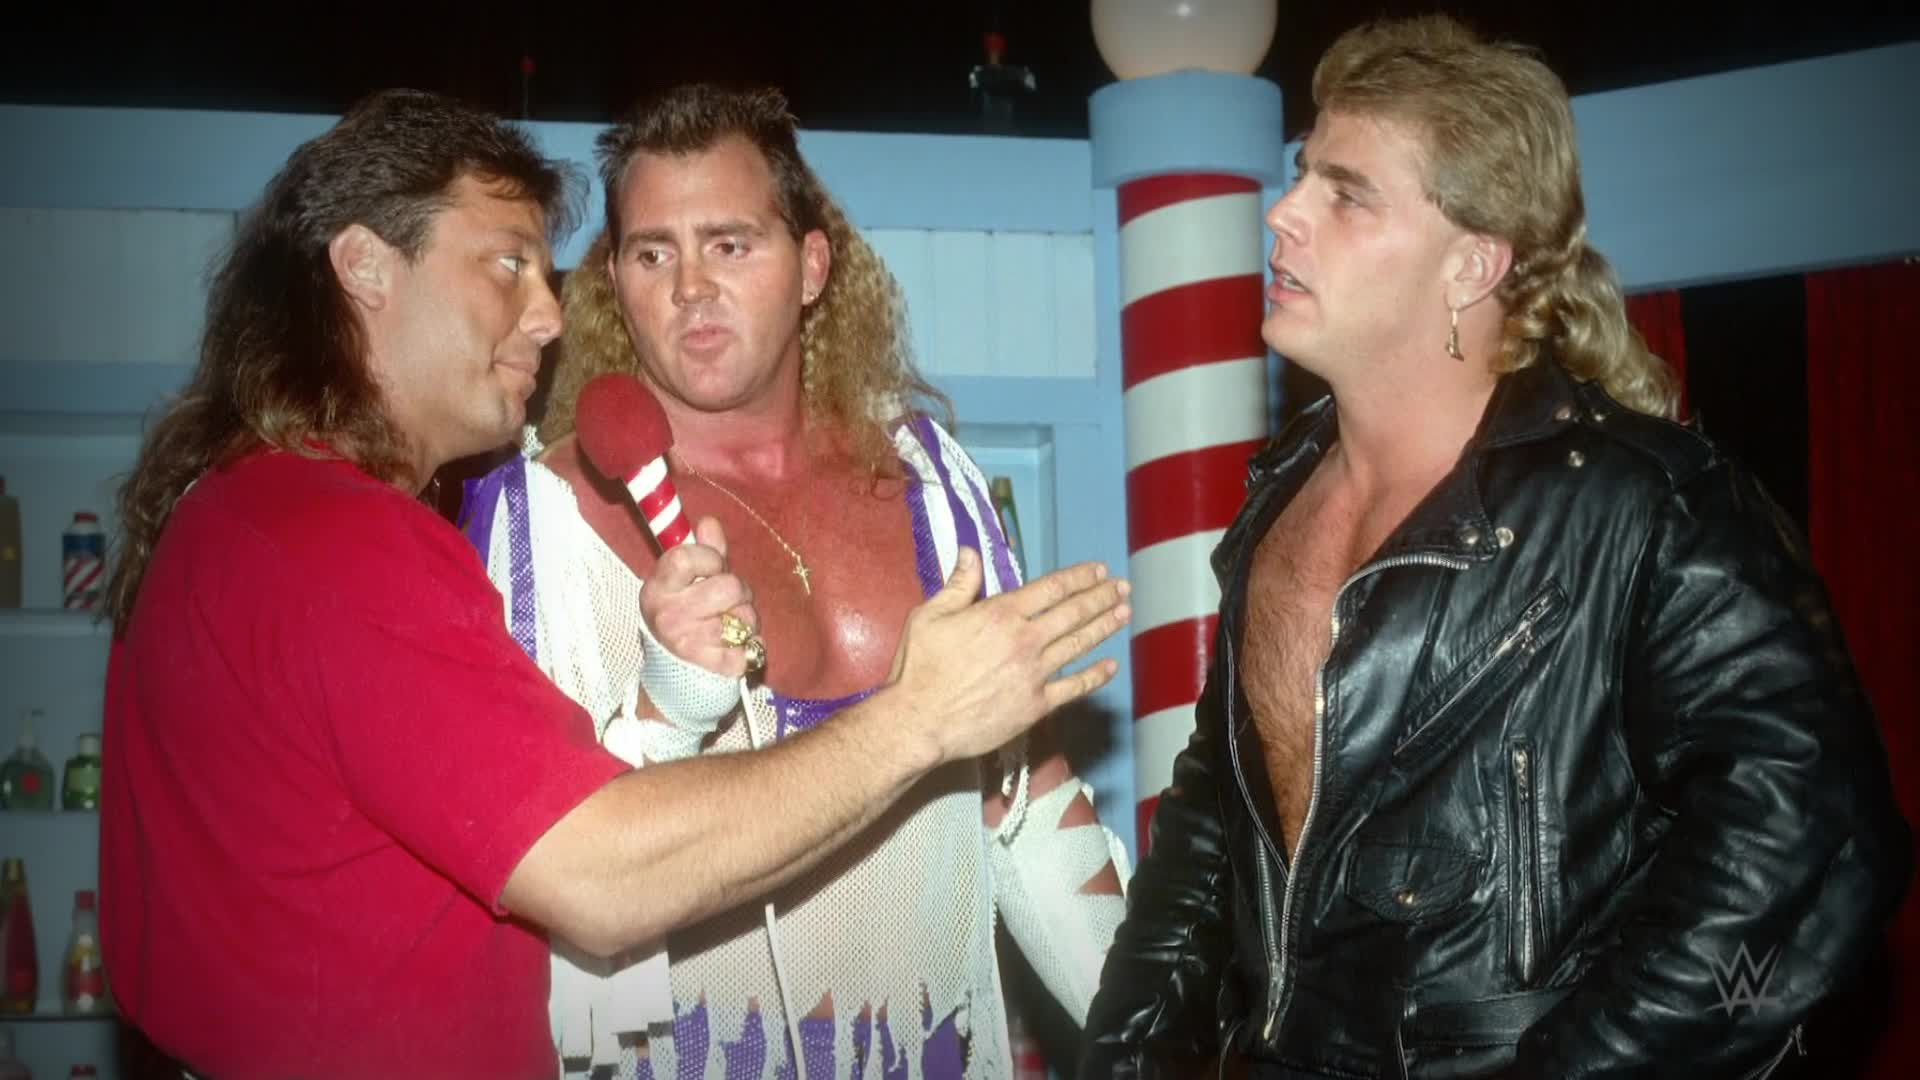 Brutus Beefcake expérience proche de la mort: Where Are They Now? Partie 3